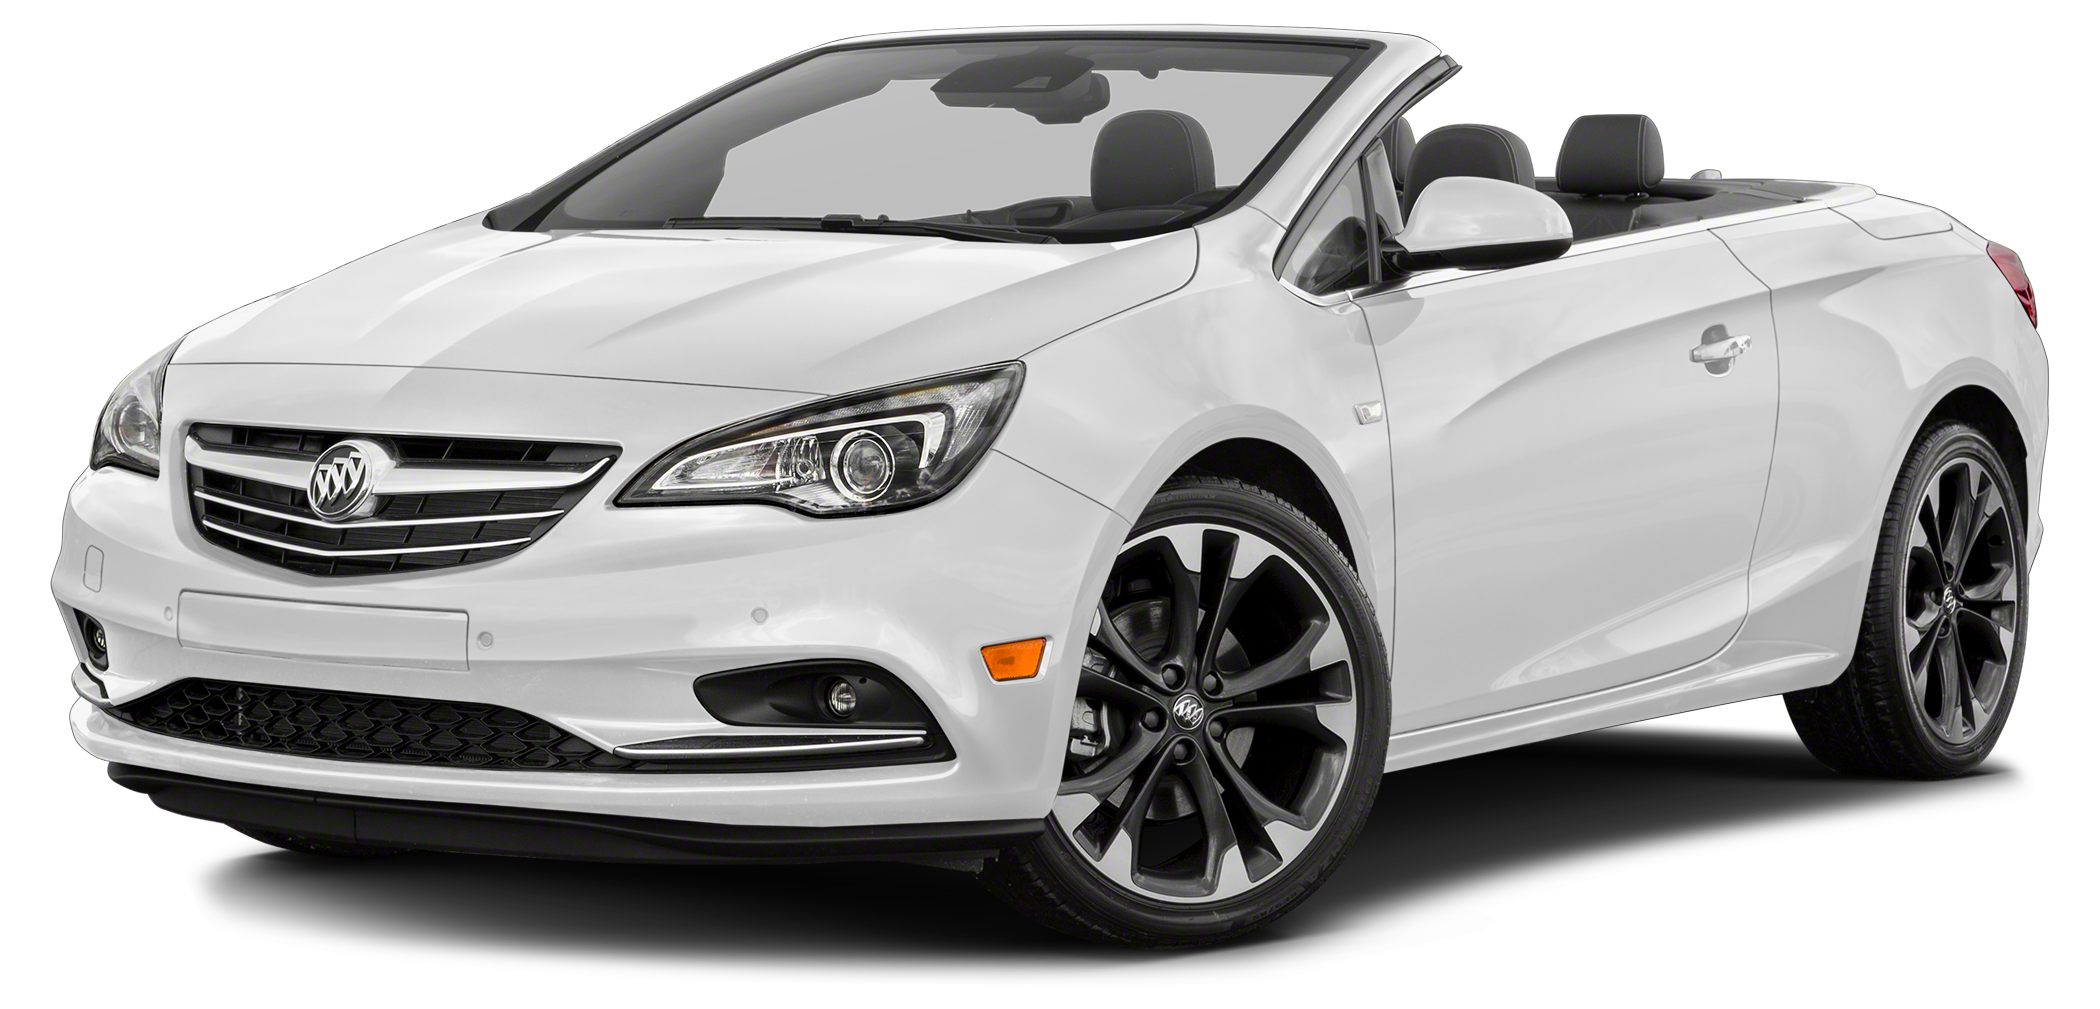 2018 Buick Cascada Sport Touring If youre shopping for a quality vehicle with perks such as a bac